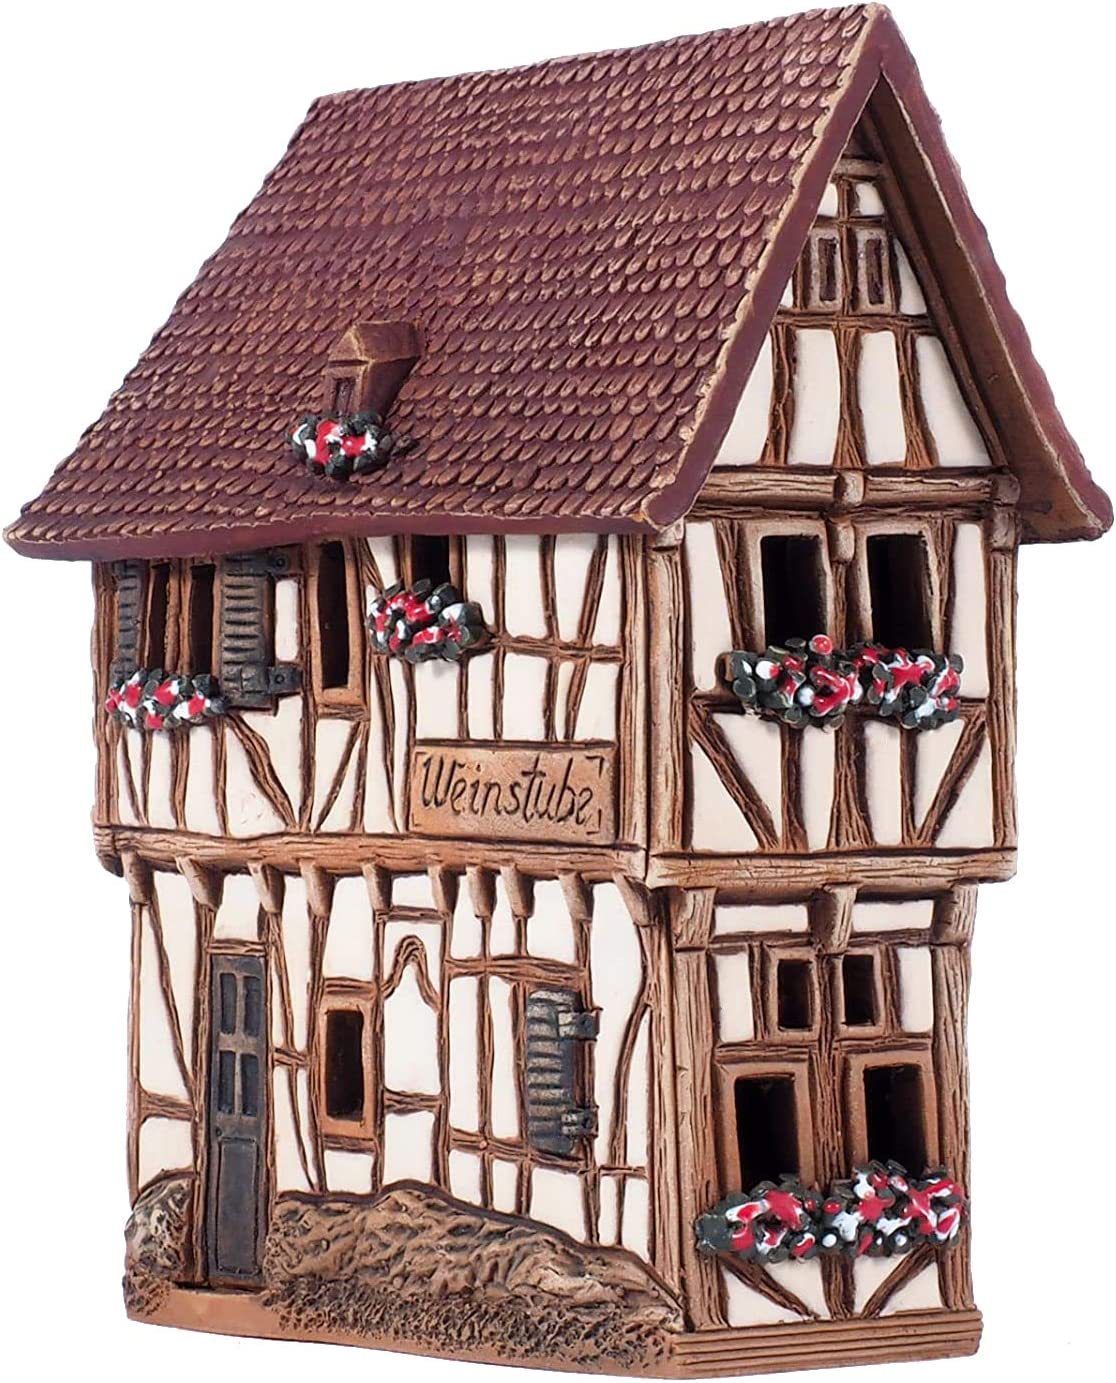 Unique Handmade Ceramic Cone Incense Burner and Incense Cone Holder for Any Room Decor. This Incense Holder is The 4.72 Inches Height Miniature Copy of The Existing Historic House in Bernkastel-Kues